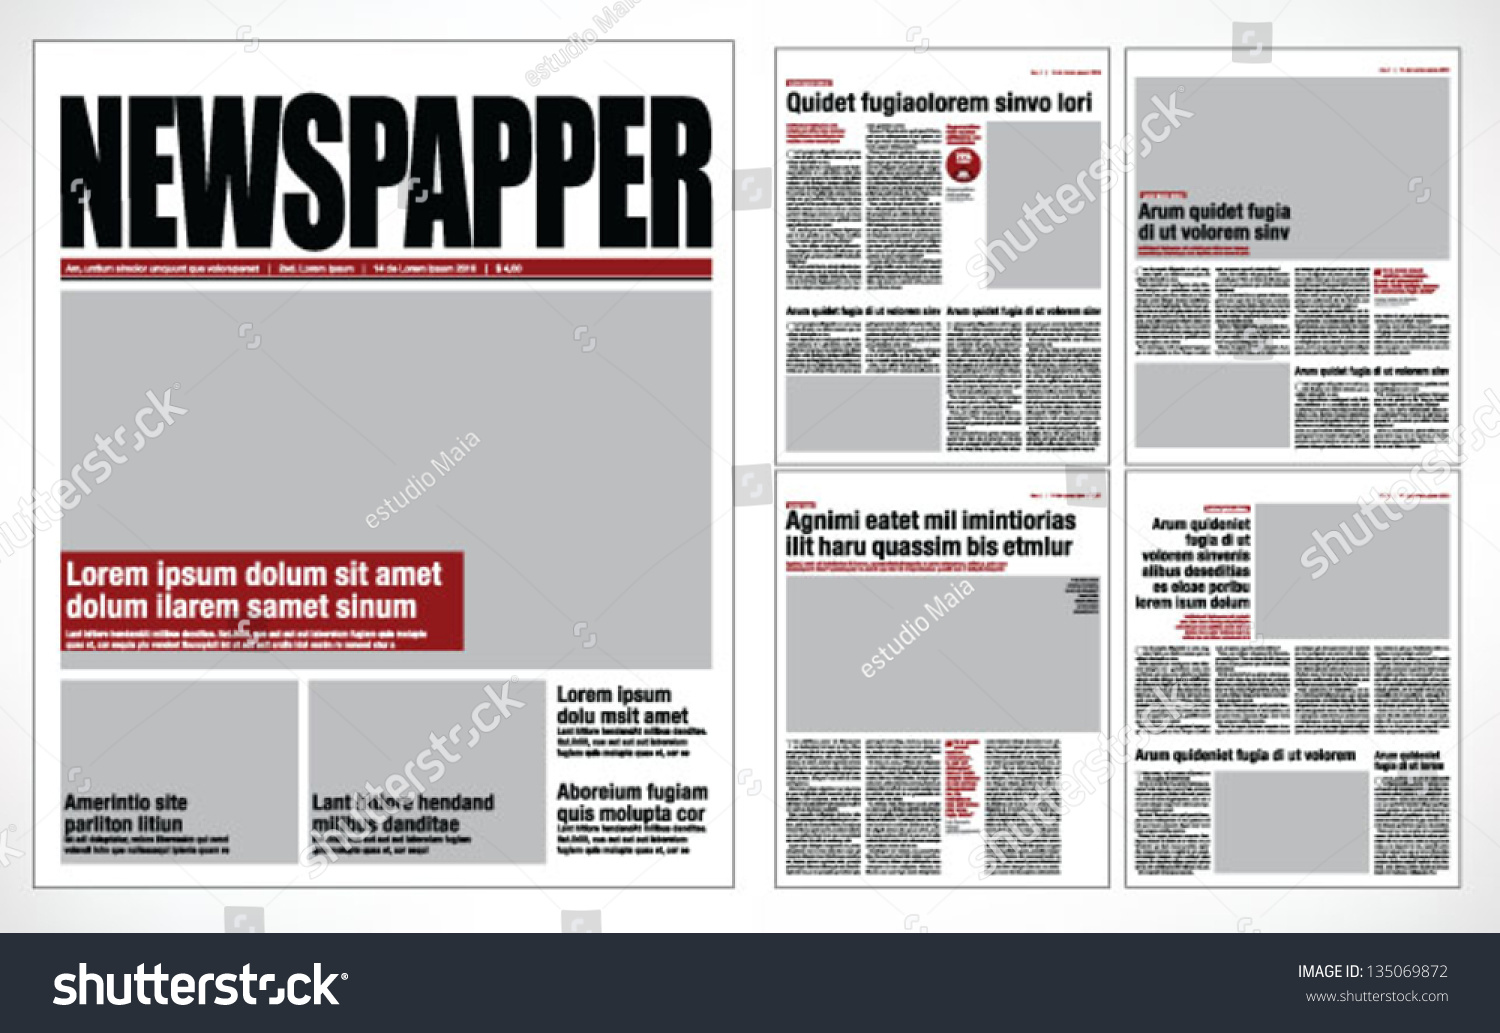 Graphical Design Newspaper Template Vektor 135069872 – Newspaper Layout Template